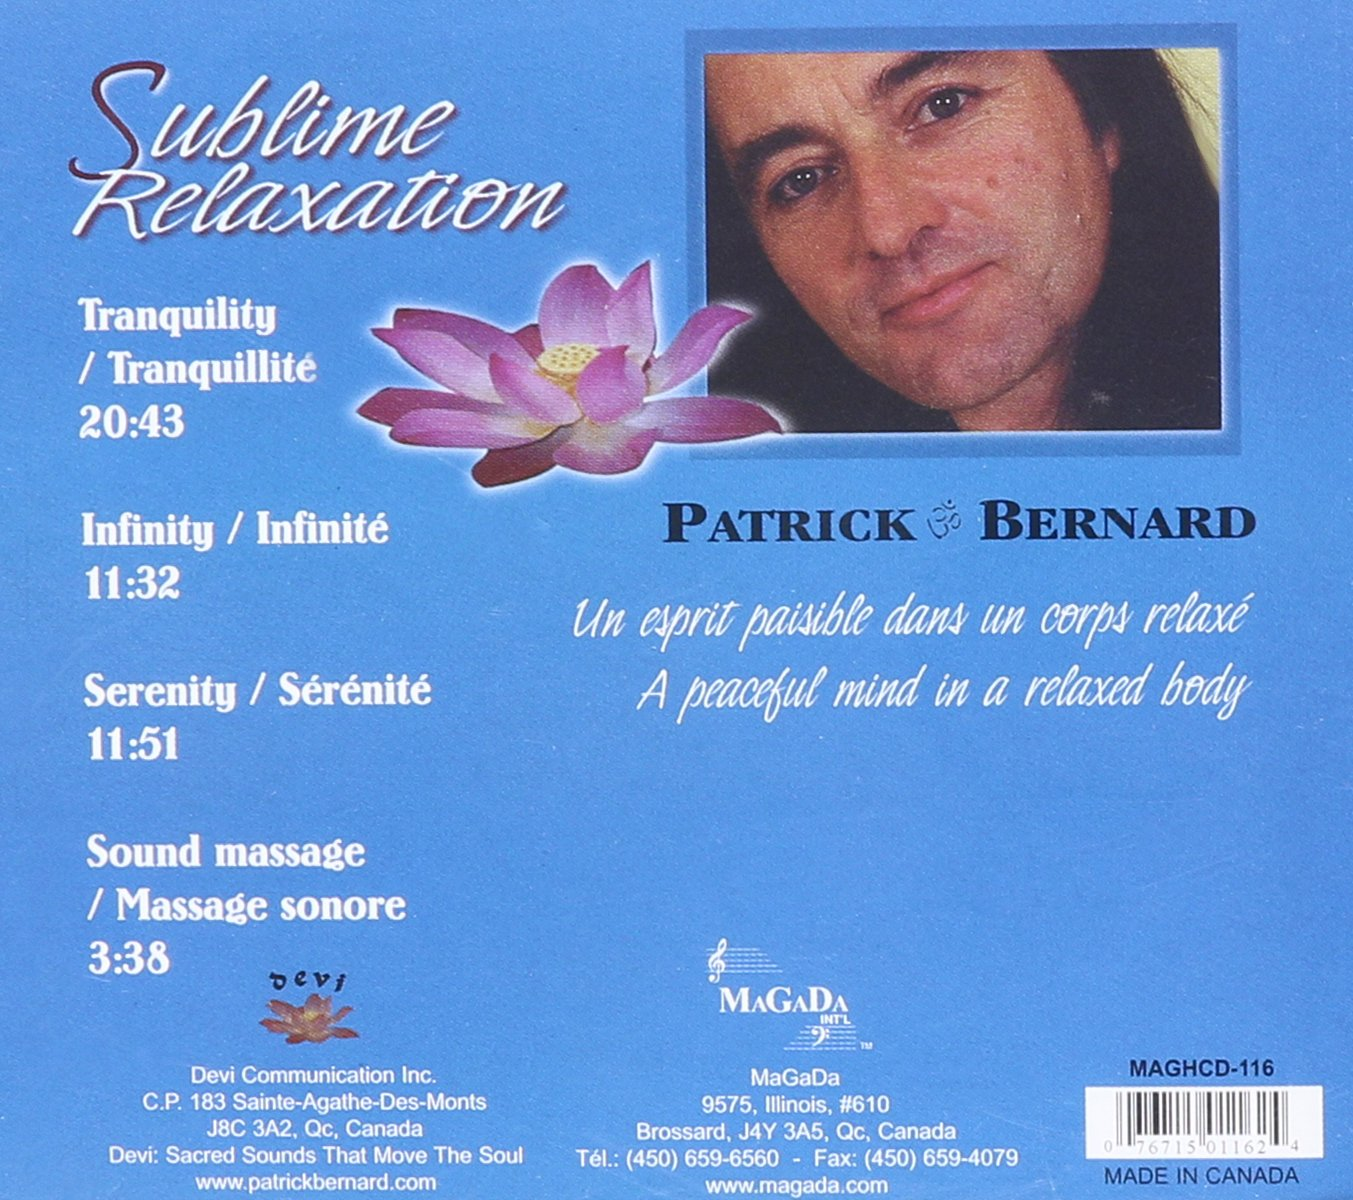 Sublime Relaxation